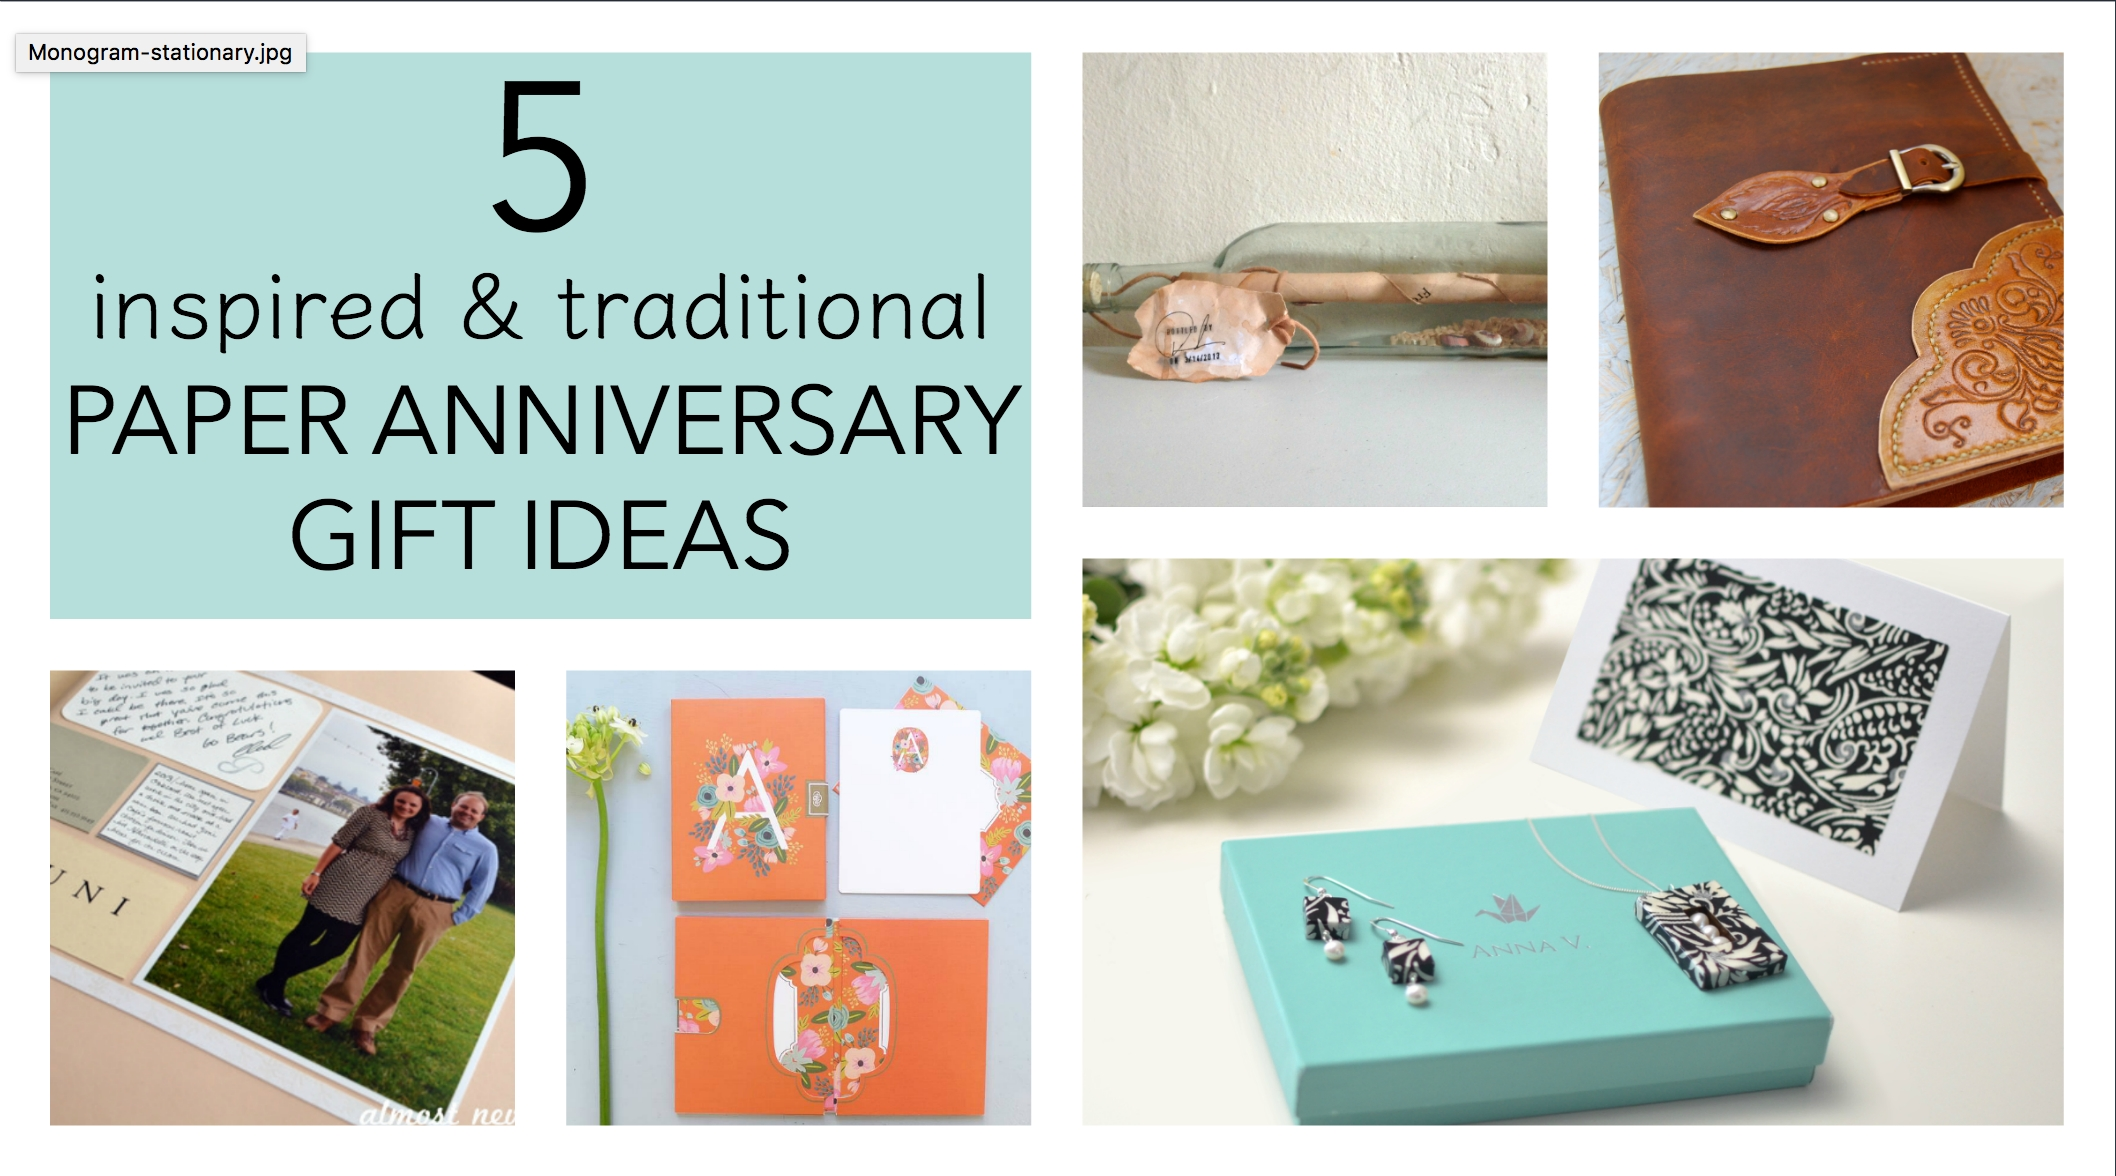 10 Elegant Good Ideas For Anniversary Gifts 5 traditional paper anniversary gift ideas for her paper 2020